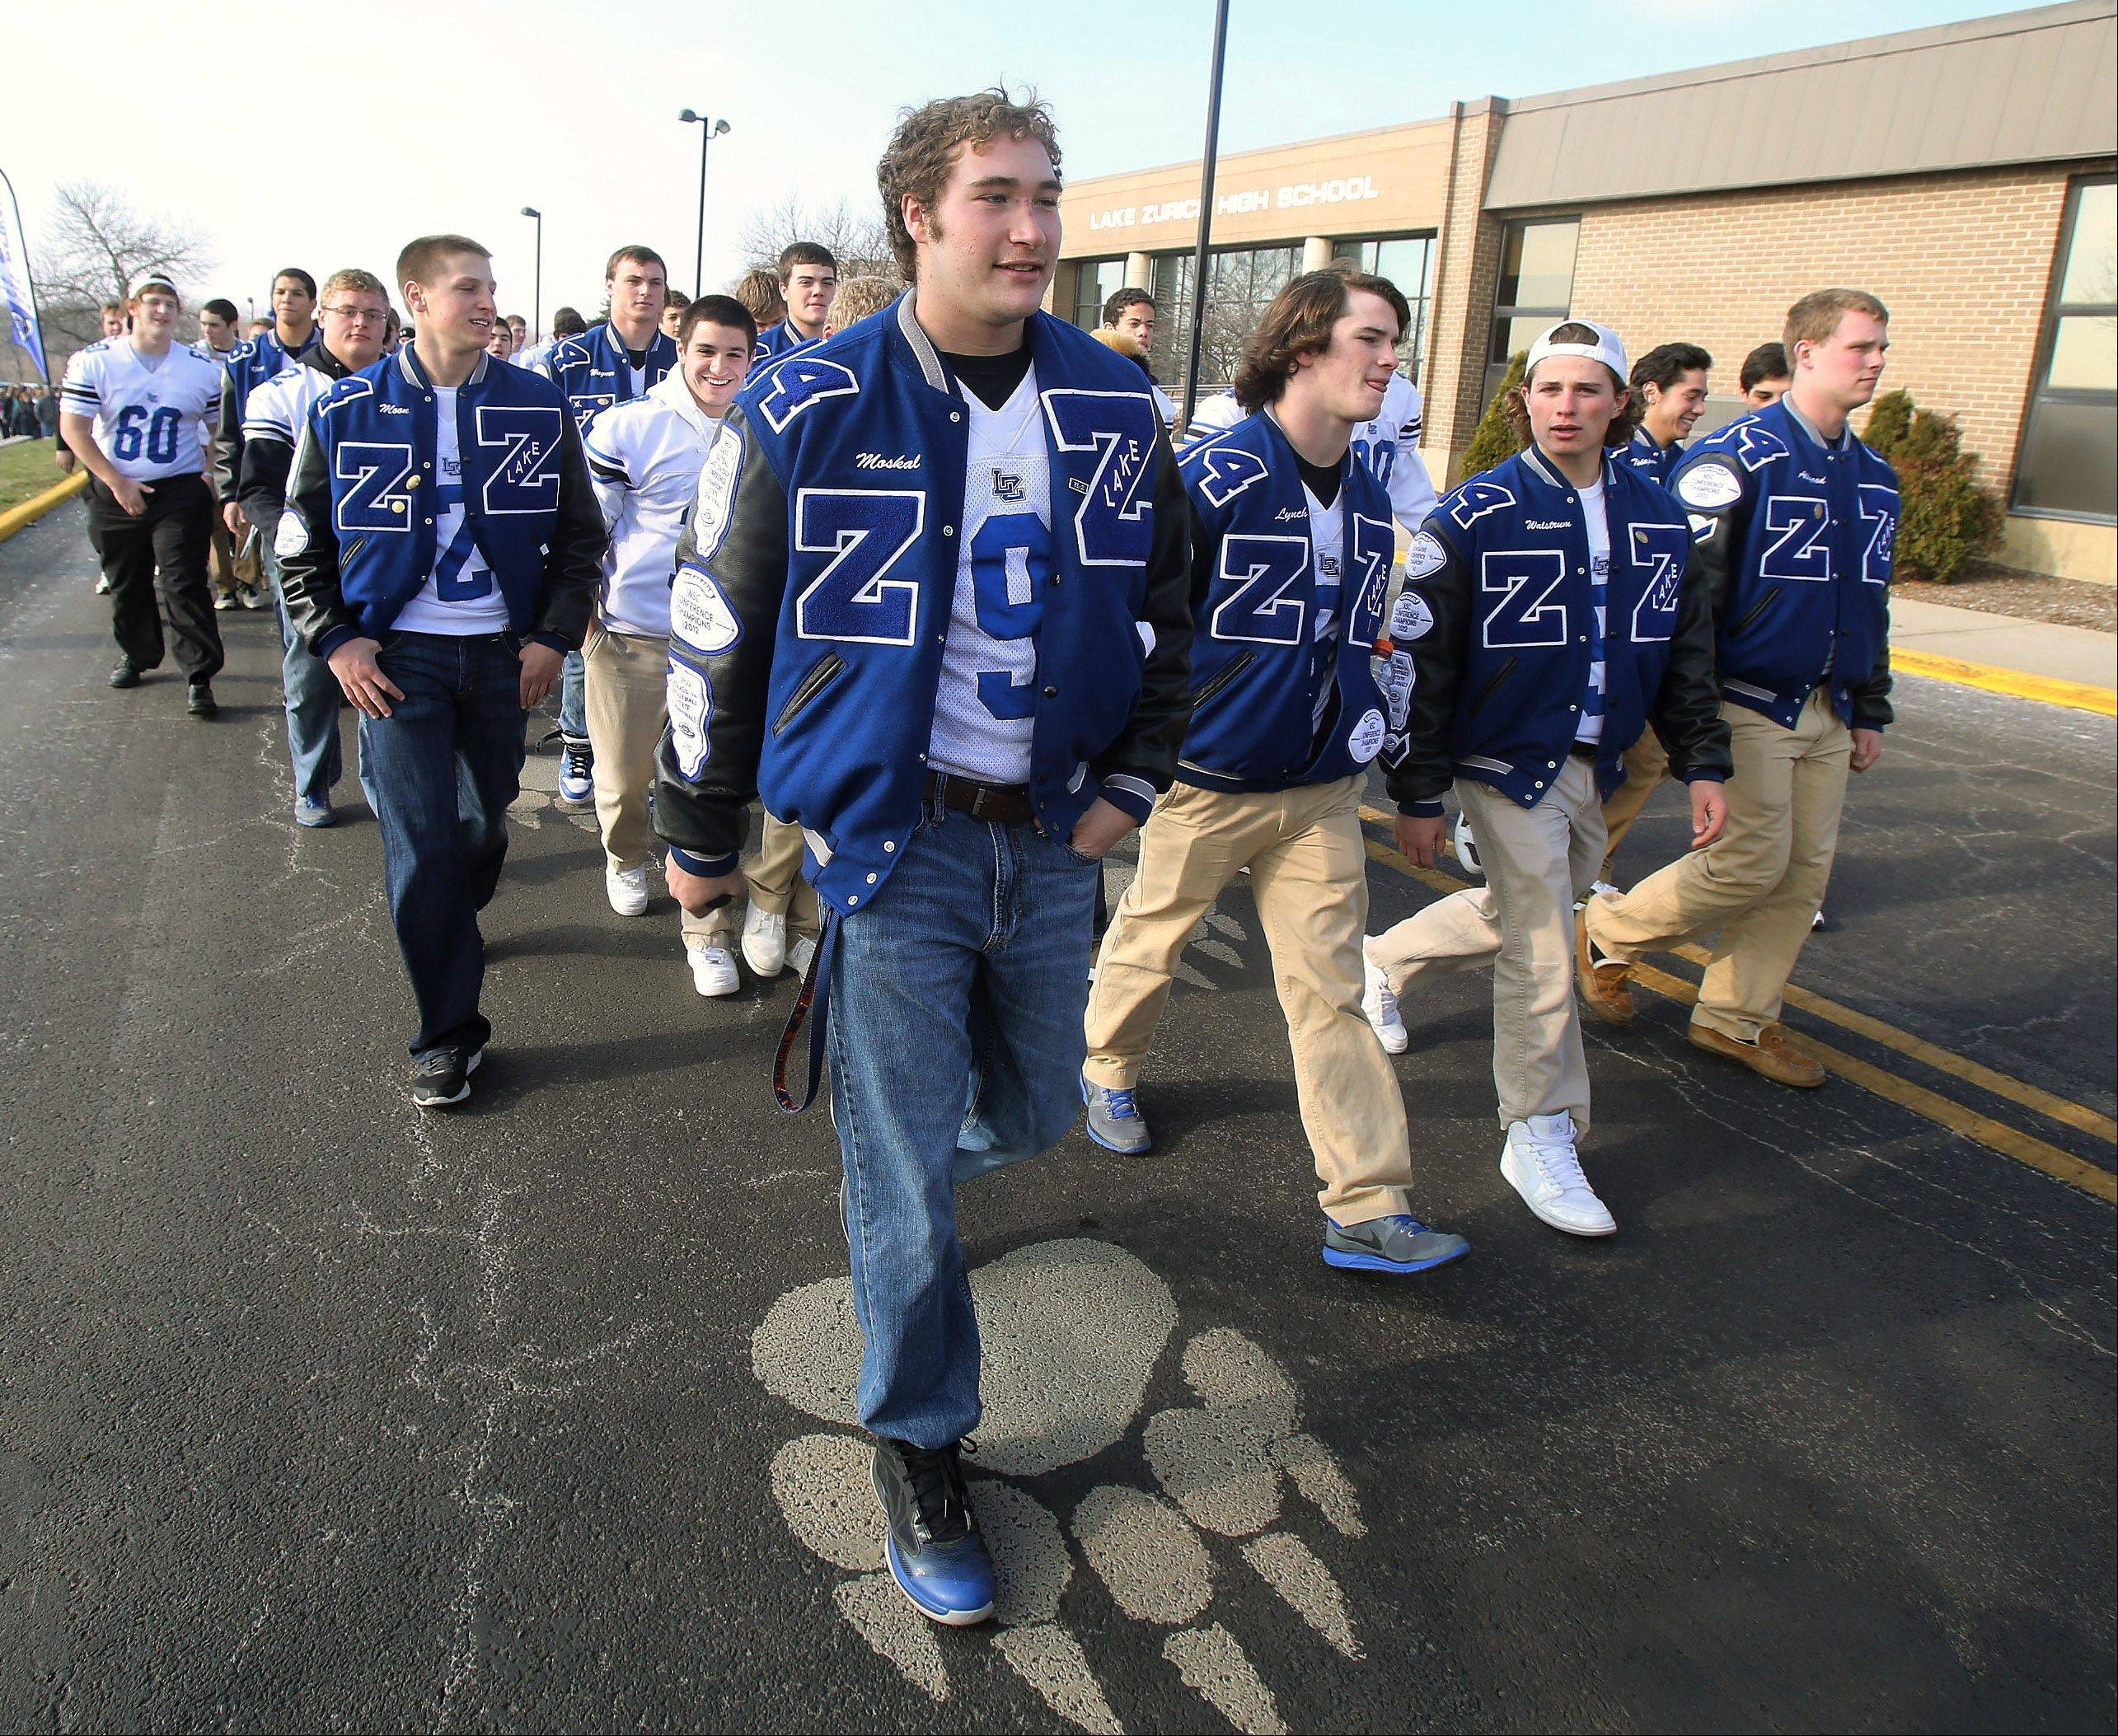 The Lake Zurich High School football team, led by captain Colton Moskal, marches in a parade Sunday after finishing second in the state Class 7A championship this weekend. A rally was held at the school in support of the team and its football season.